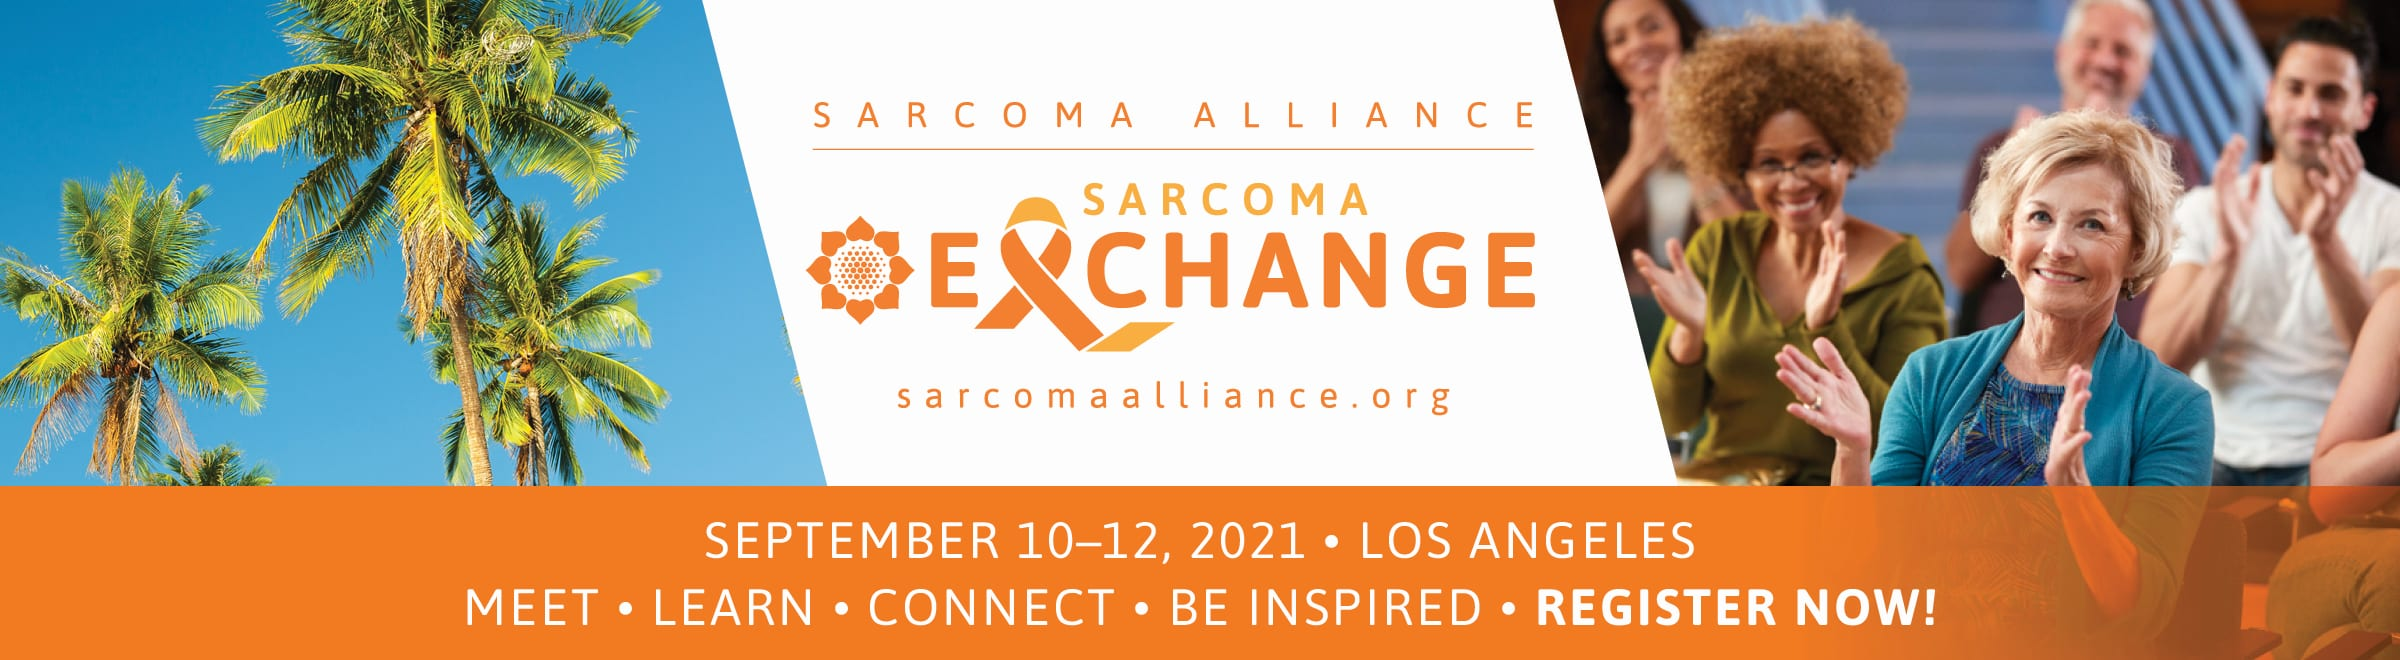 Banner promoting Sarcoma Exchange coming in September 2021